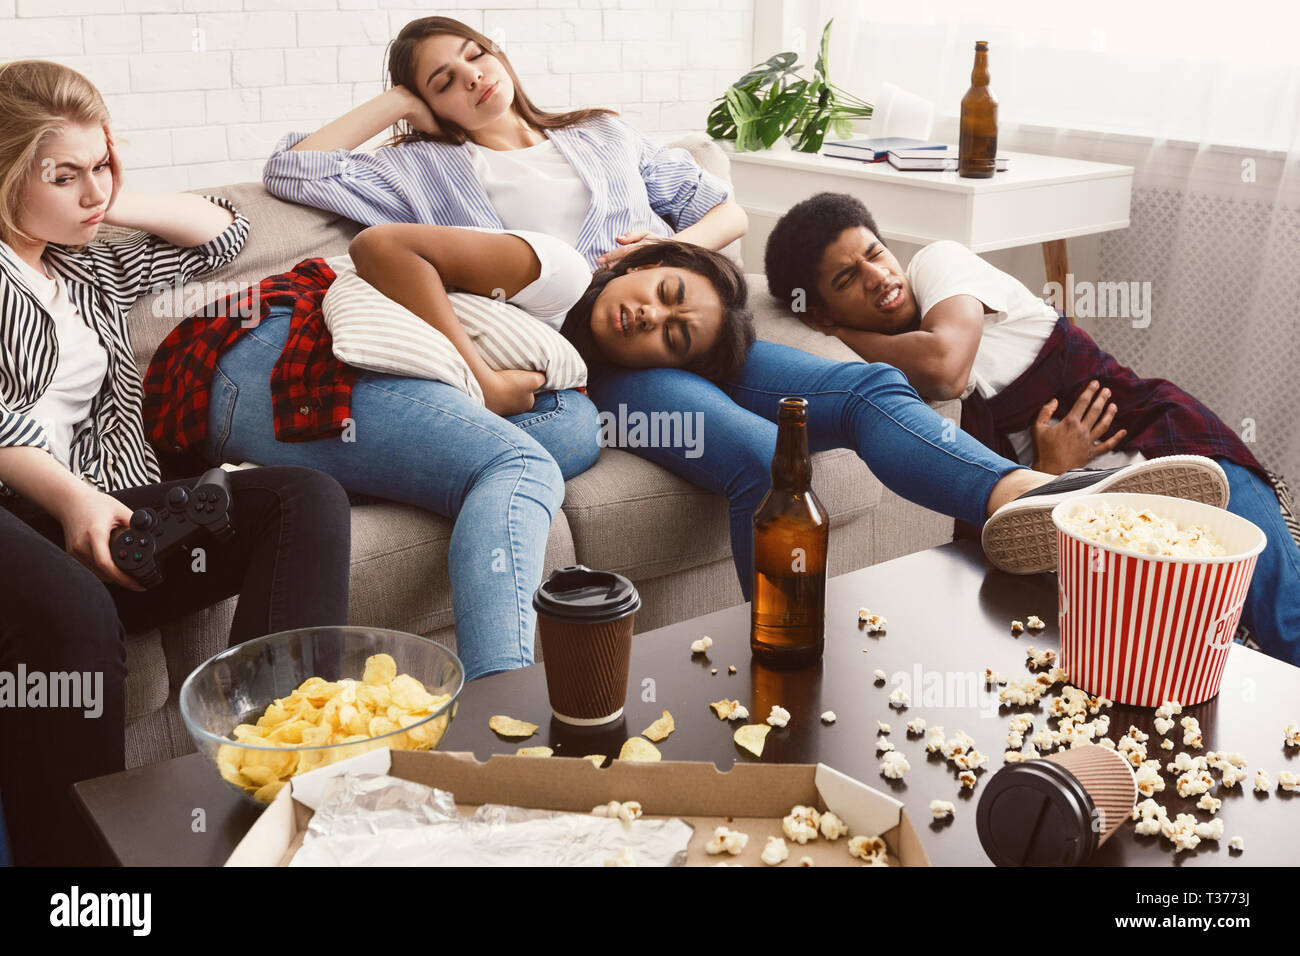 Friends suffering from stomachache and headache in messy room - Stock Image